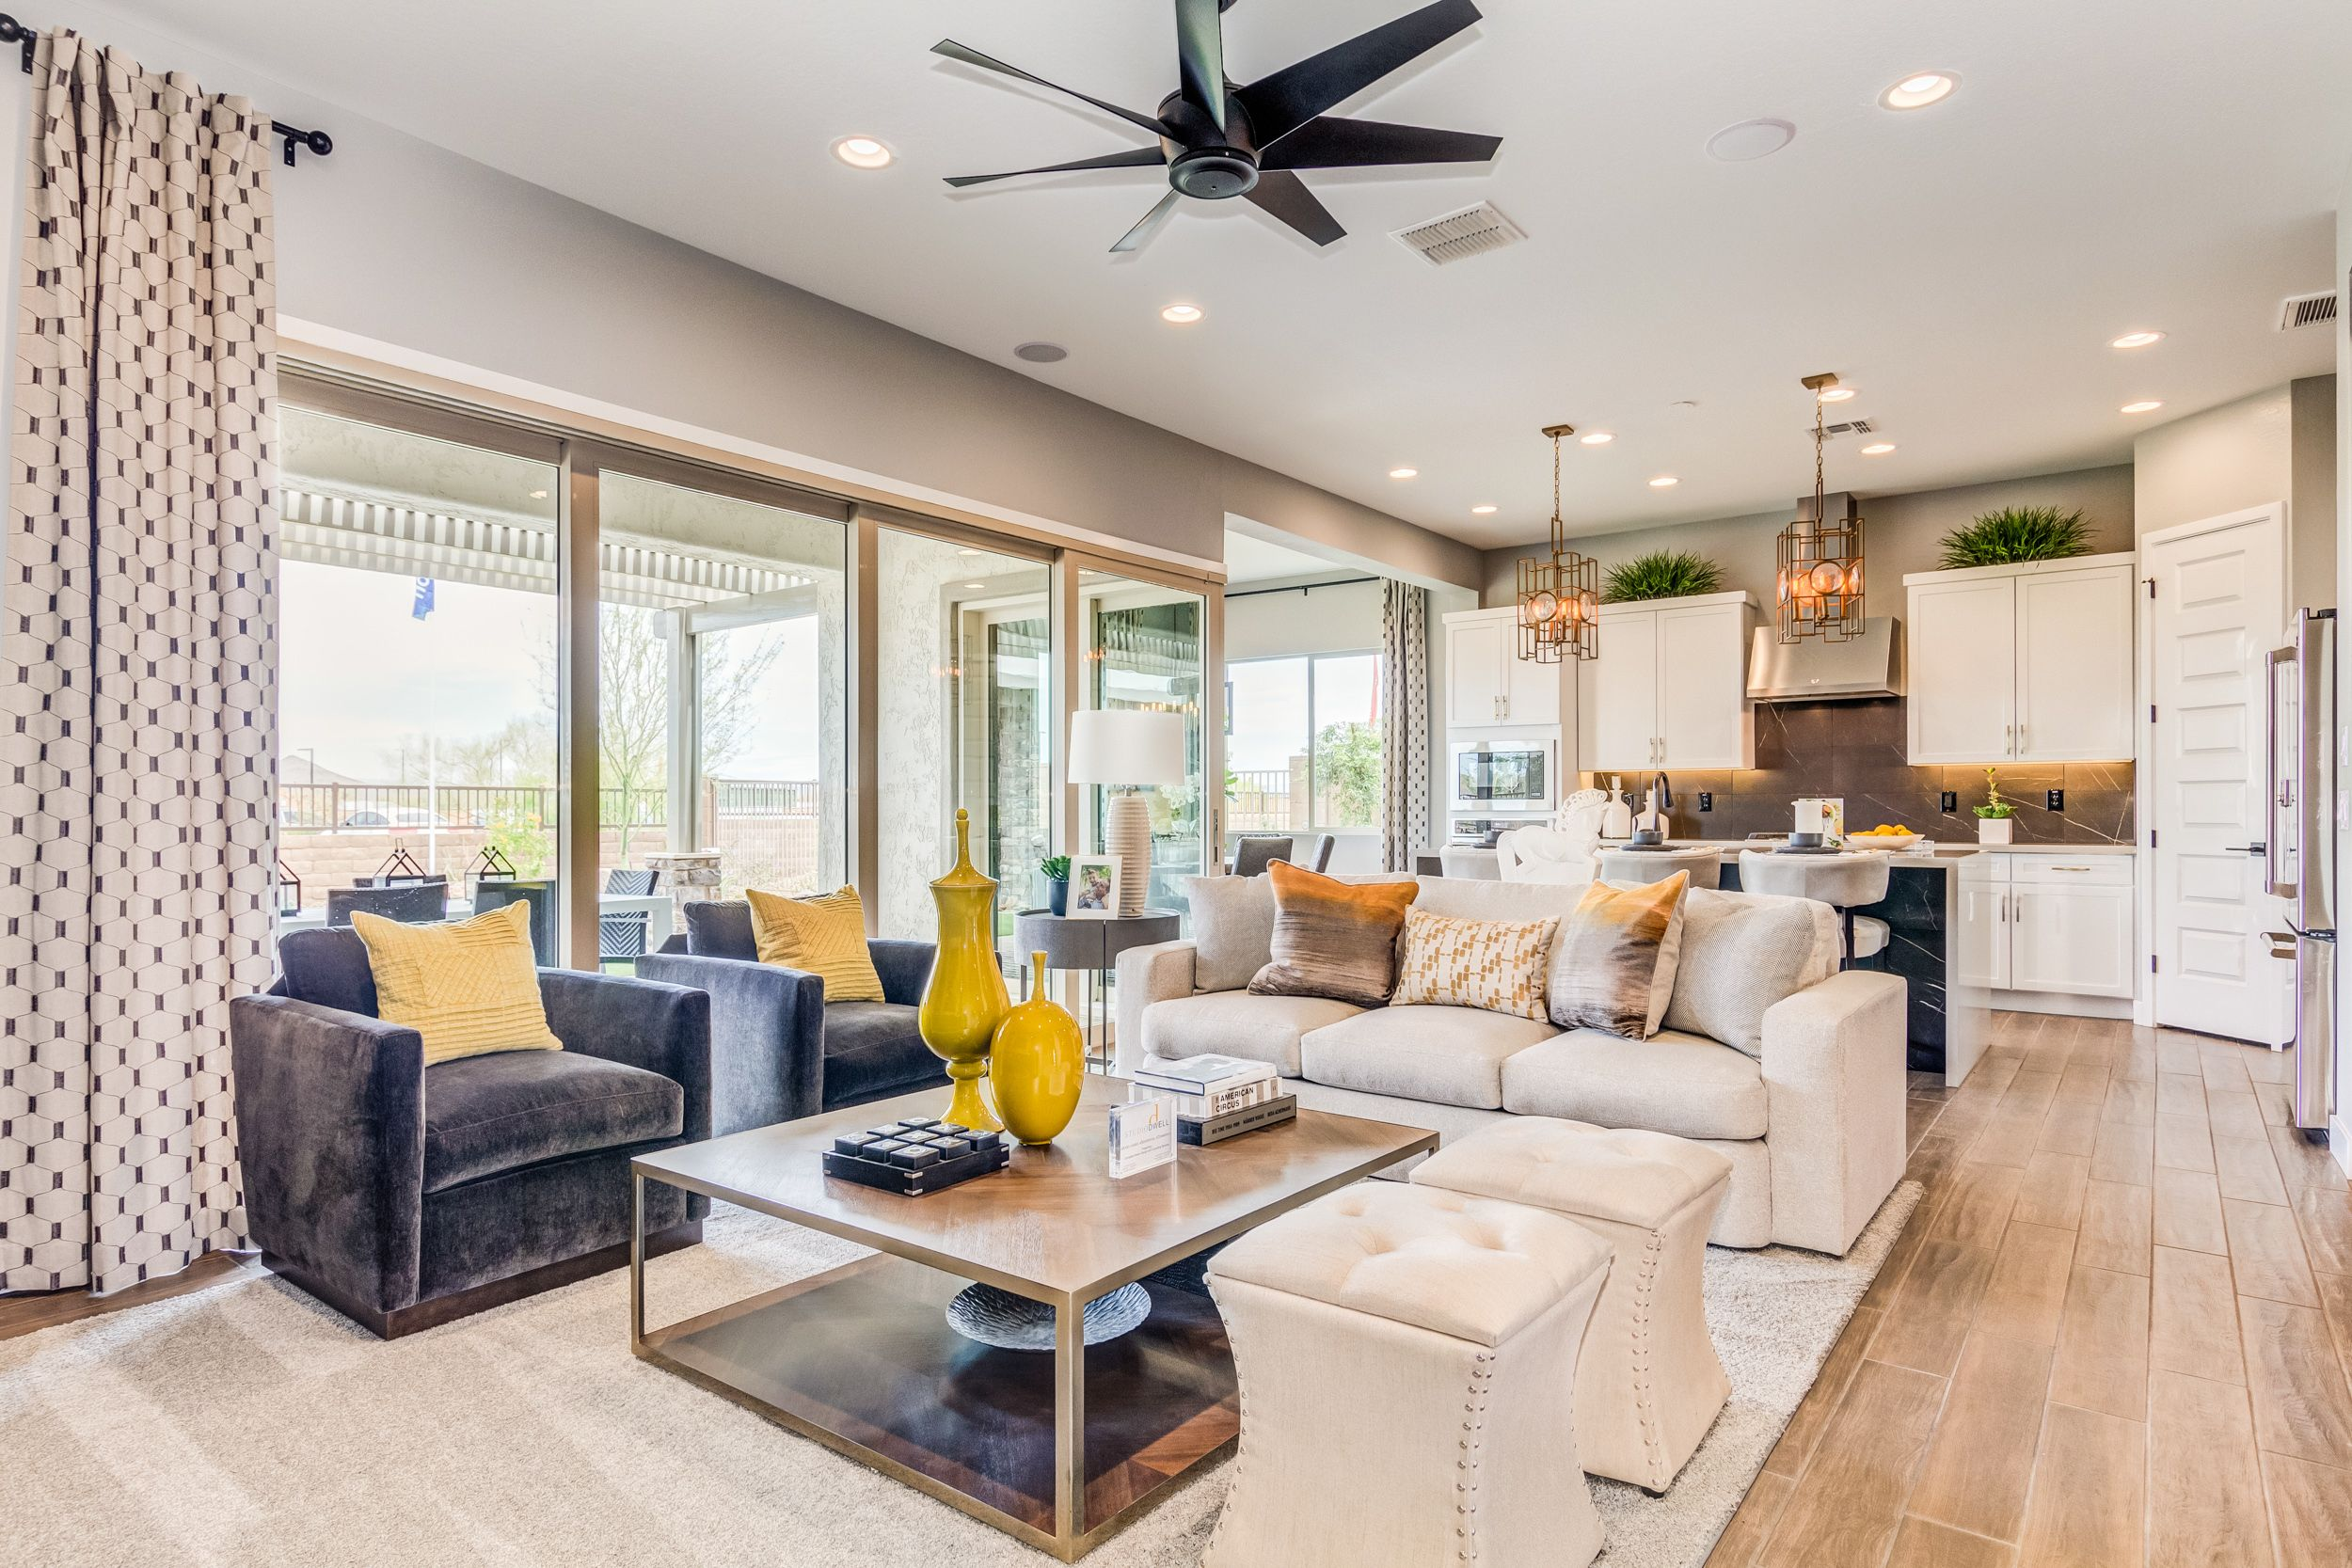 Alluring From All Angles Livingroom Patio Roomwithaview Sunnydays Taylormorrison Phoenix Realestate With Images New Homes Model Homes Phoenix Homes